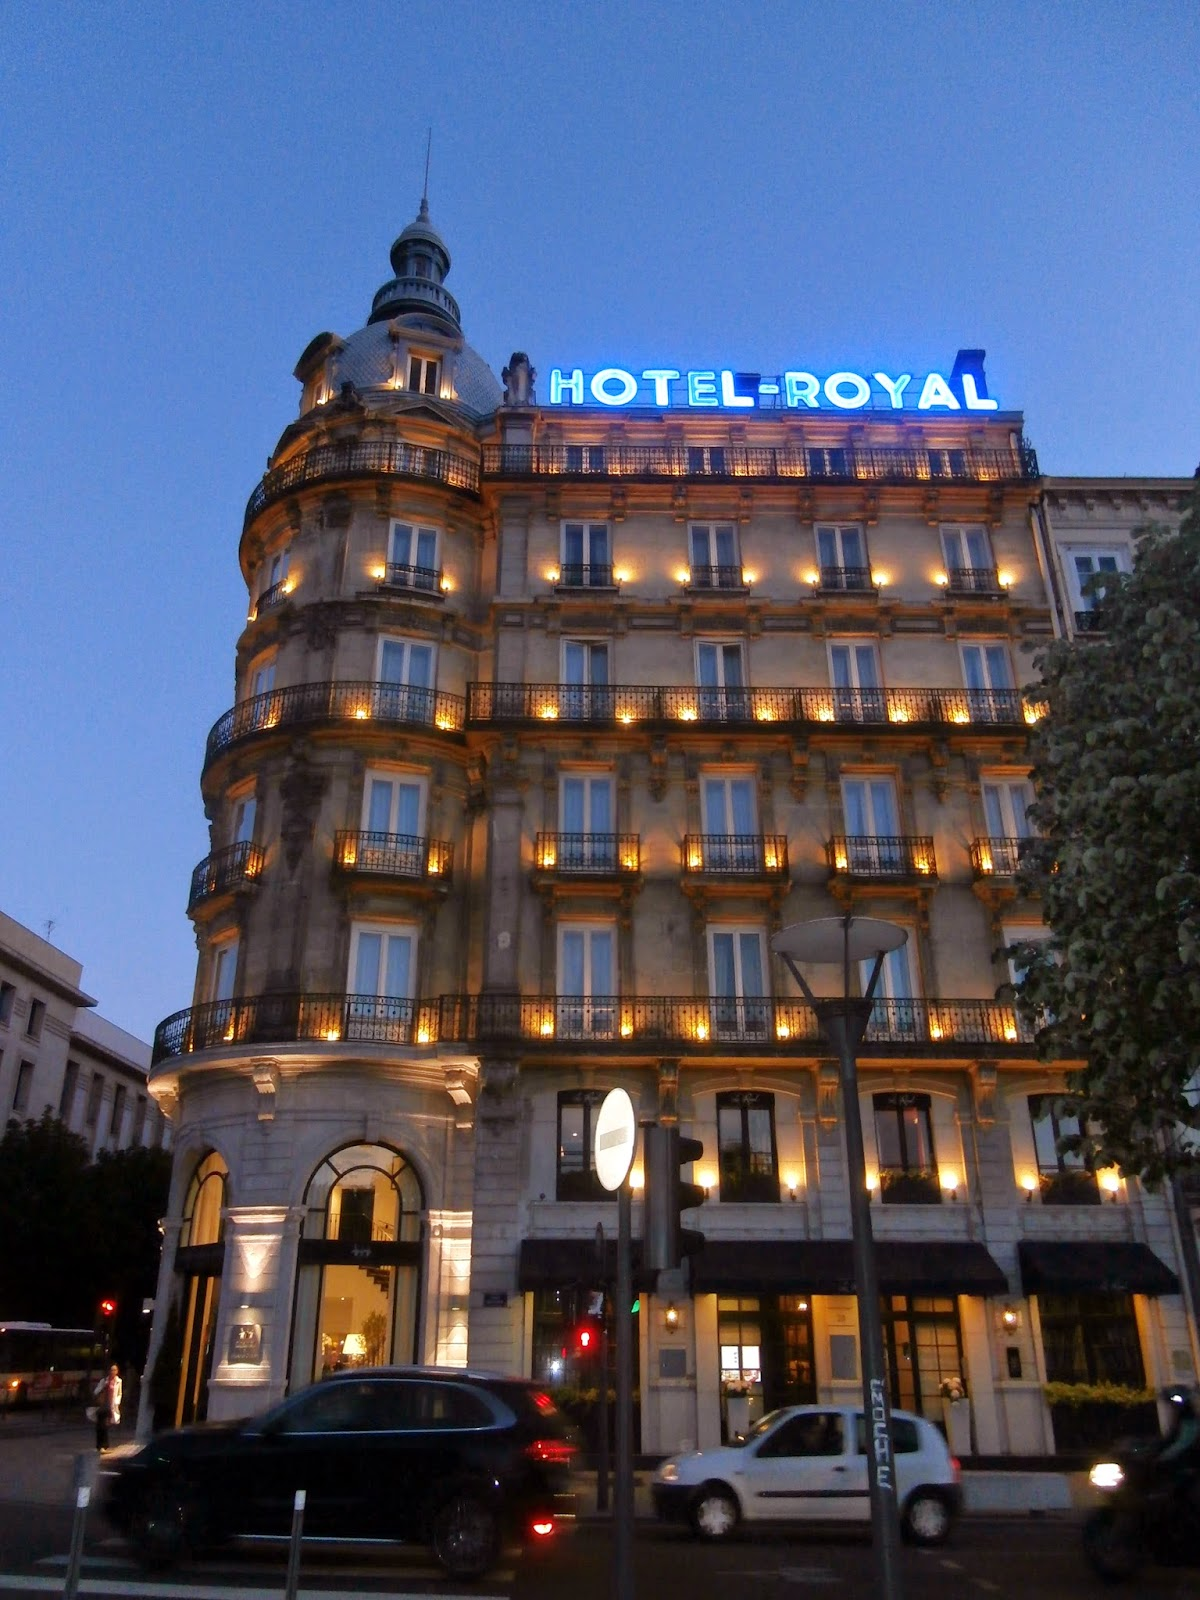 hotel le royal lyon lyon france sunshine lobster by